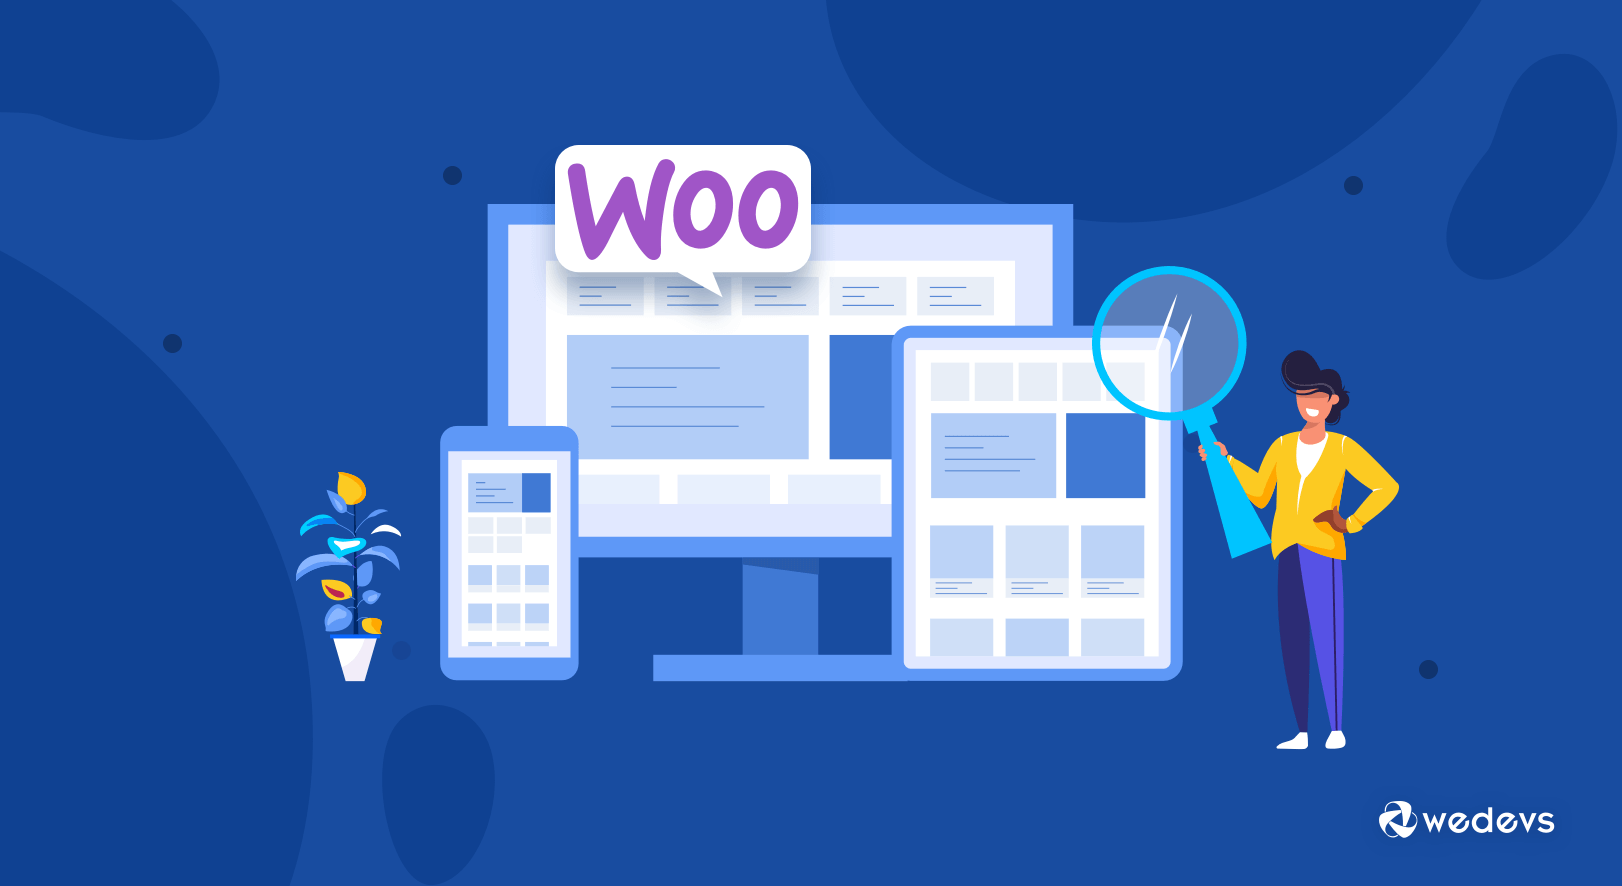 How to Make Your WooCommerce Site Mobile-Ready with 9 Simple Steps